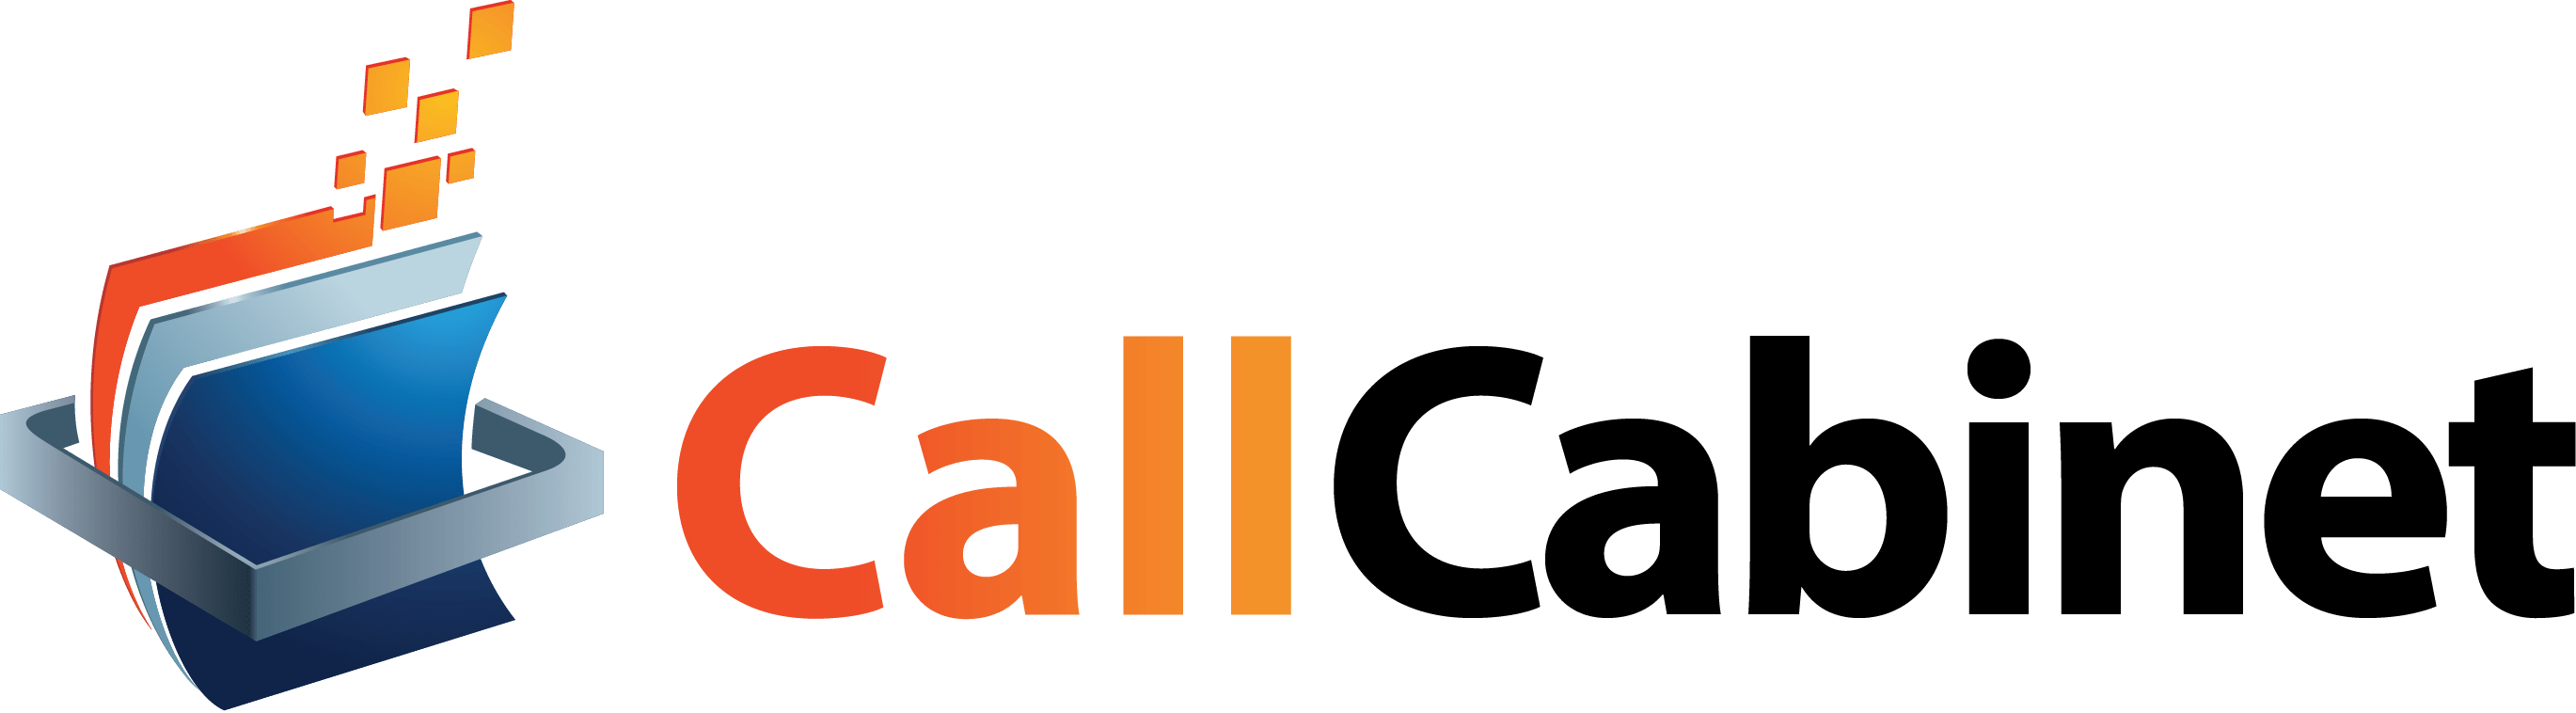 Call Recording and Agent Evaluation Solutions   CallCabinet